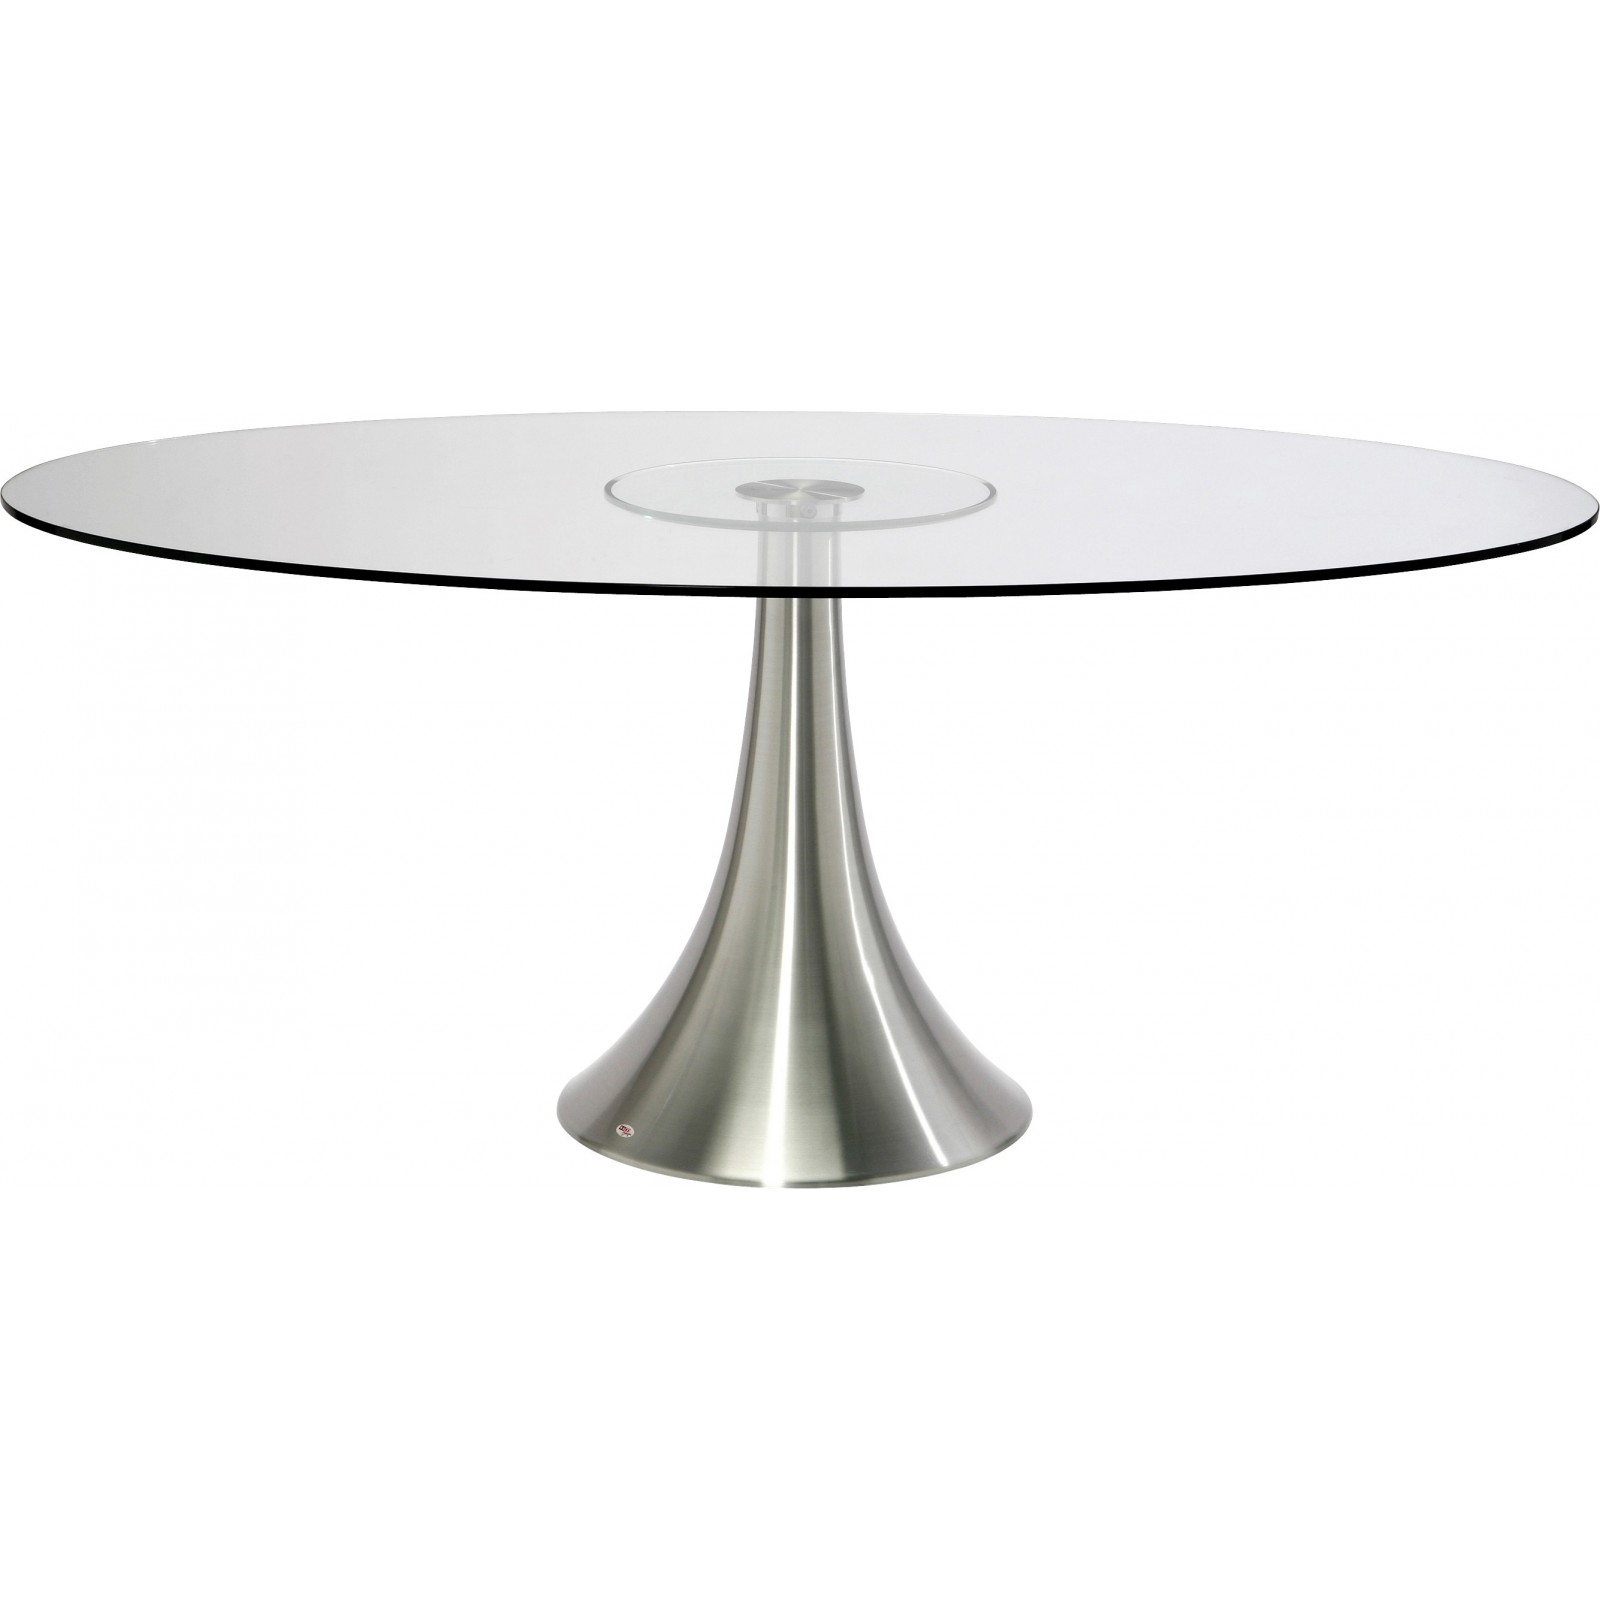 Table design verre possibilita kare design for Table de cuisine ovale